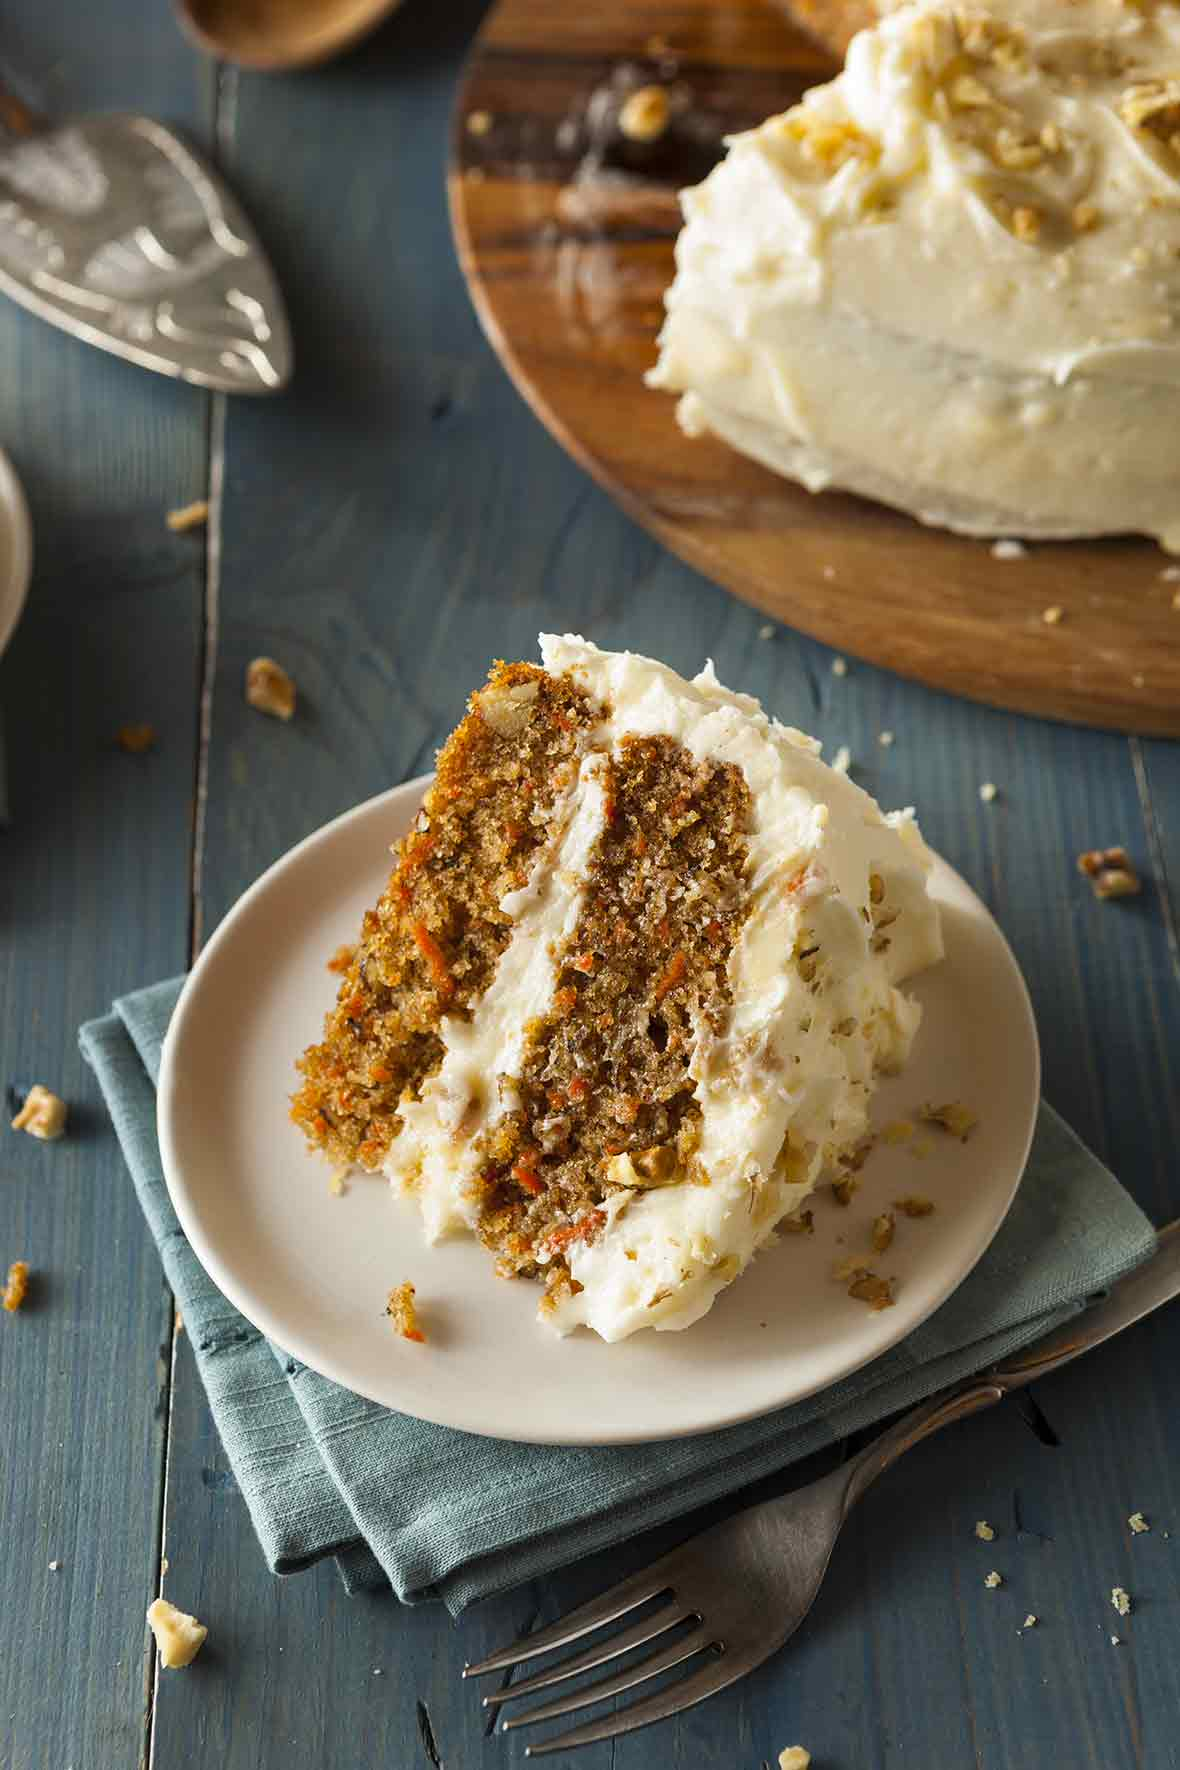 A slice of classic carrot cake--two carrot cake layers filled and frosted with cream cheese frosting; on top are crushed walnuts